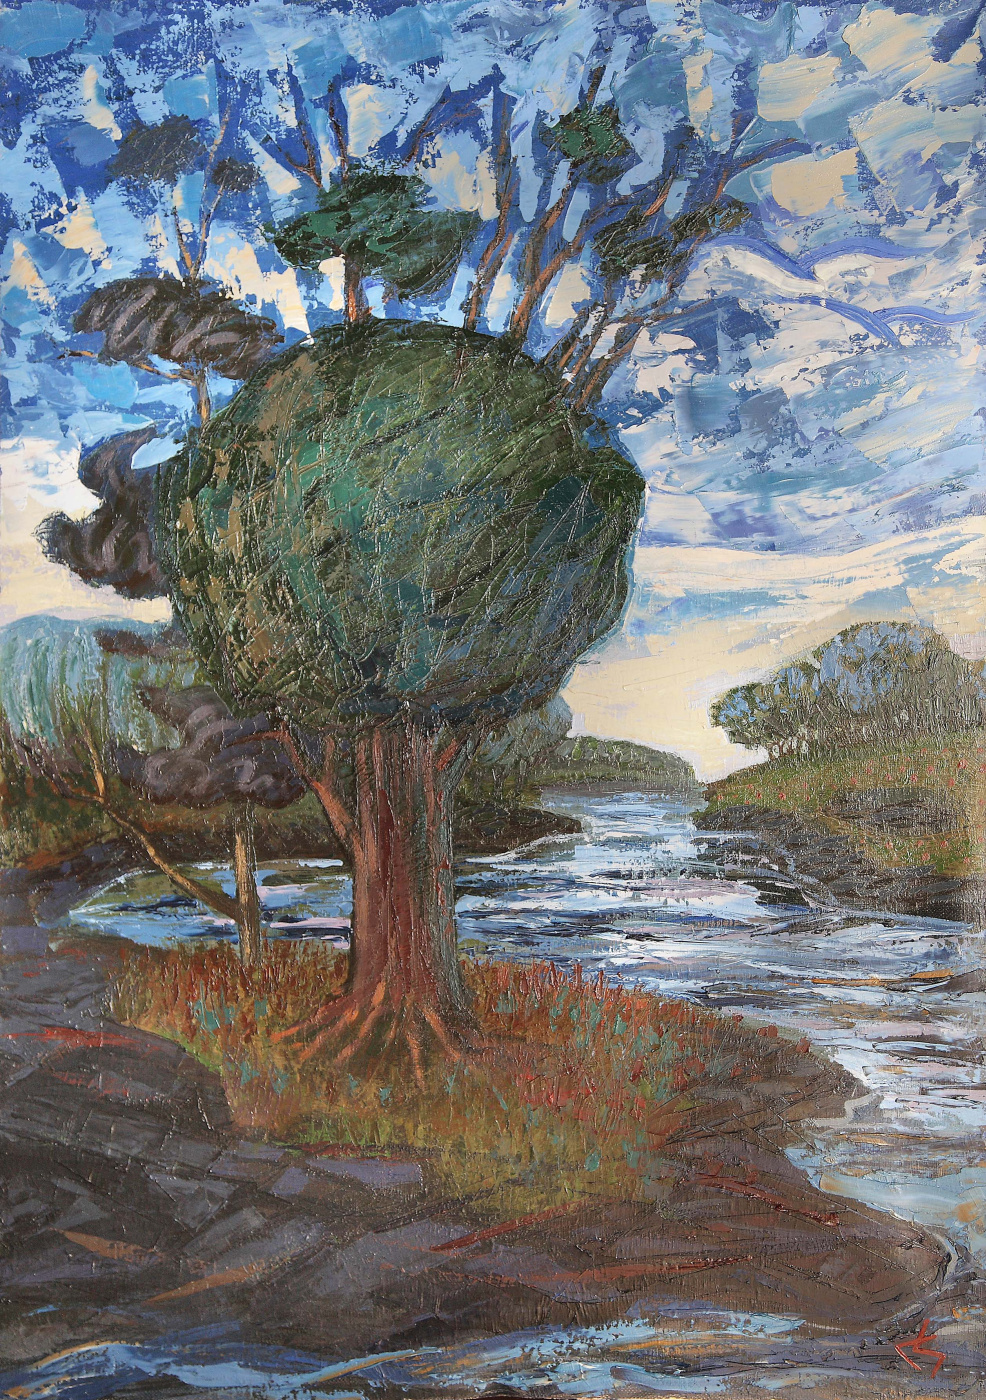 Sergey Nikolaevich Simkin. Landscape with a tree_ Heavenly and Earthly energetics of connection